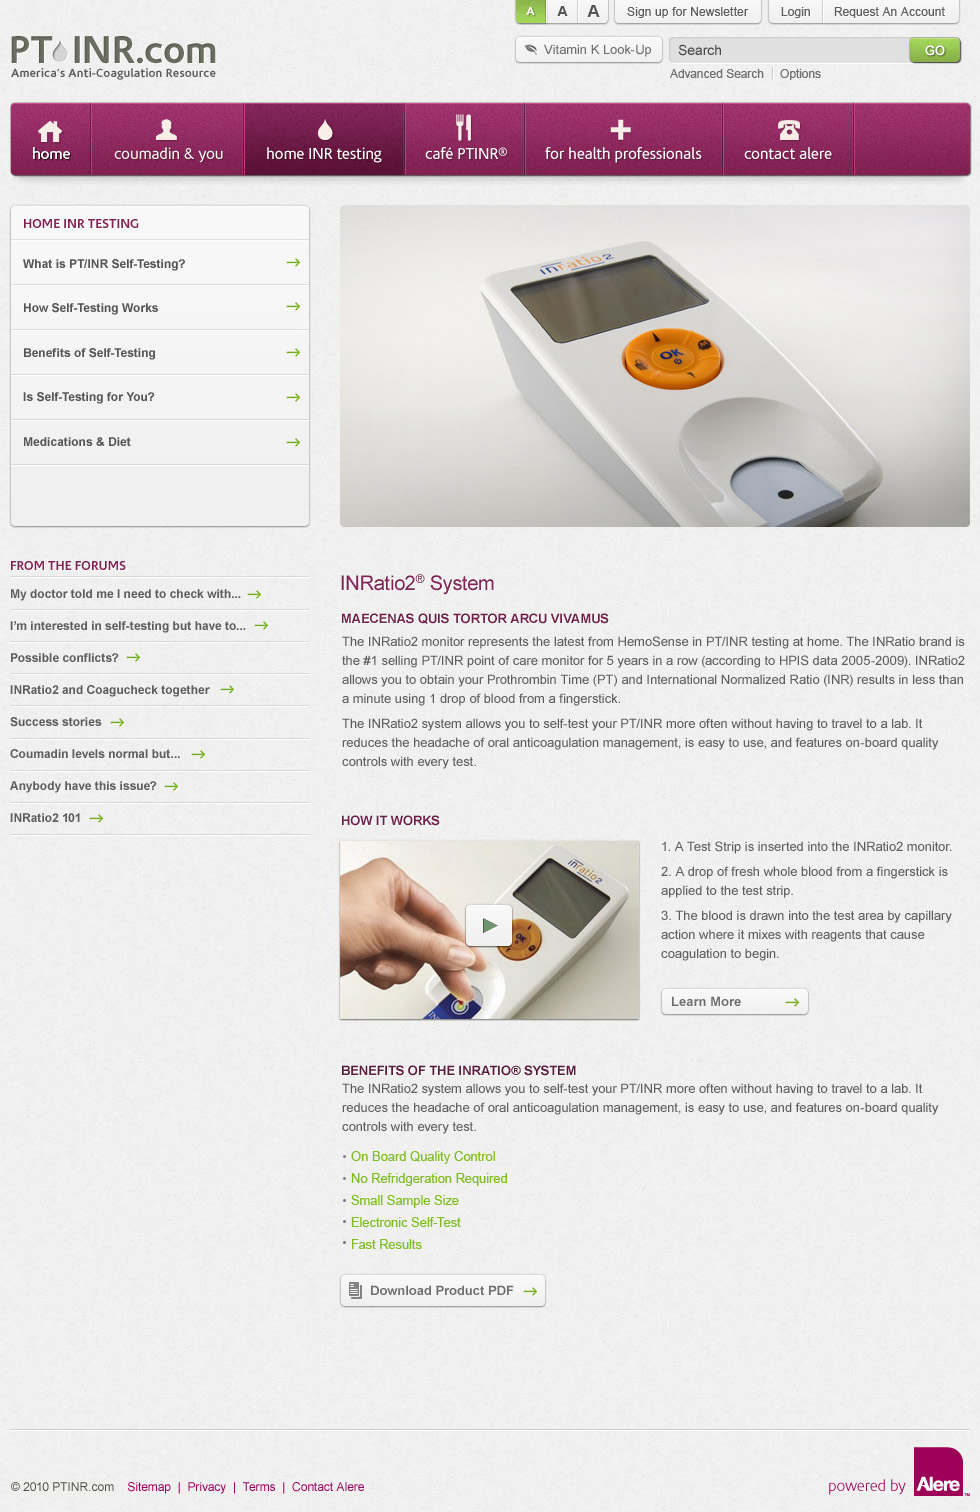 PTINR Website - Home INR Testing